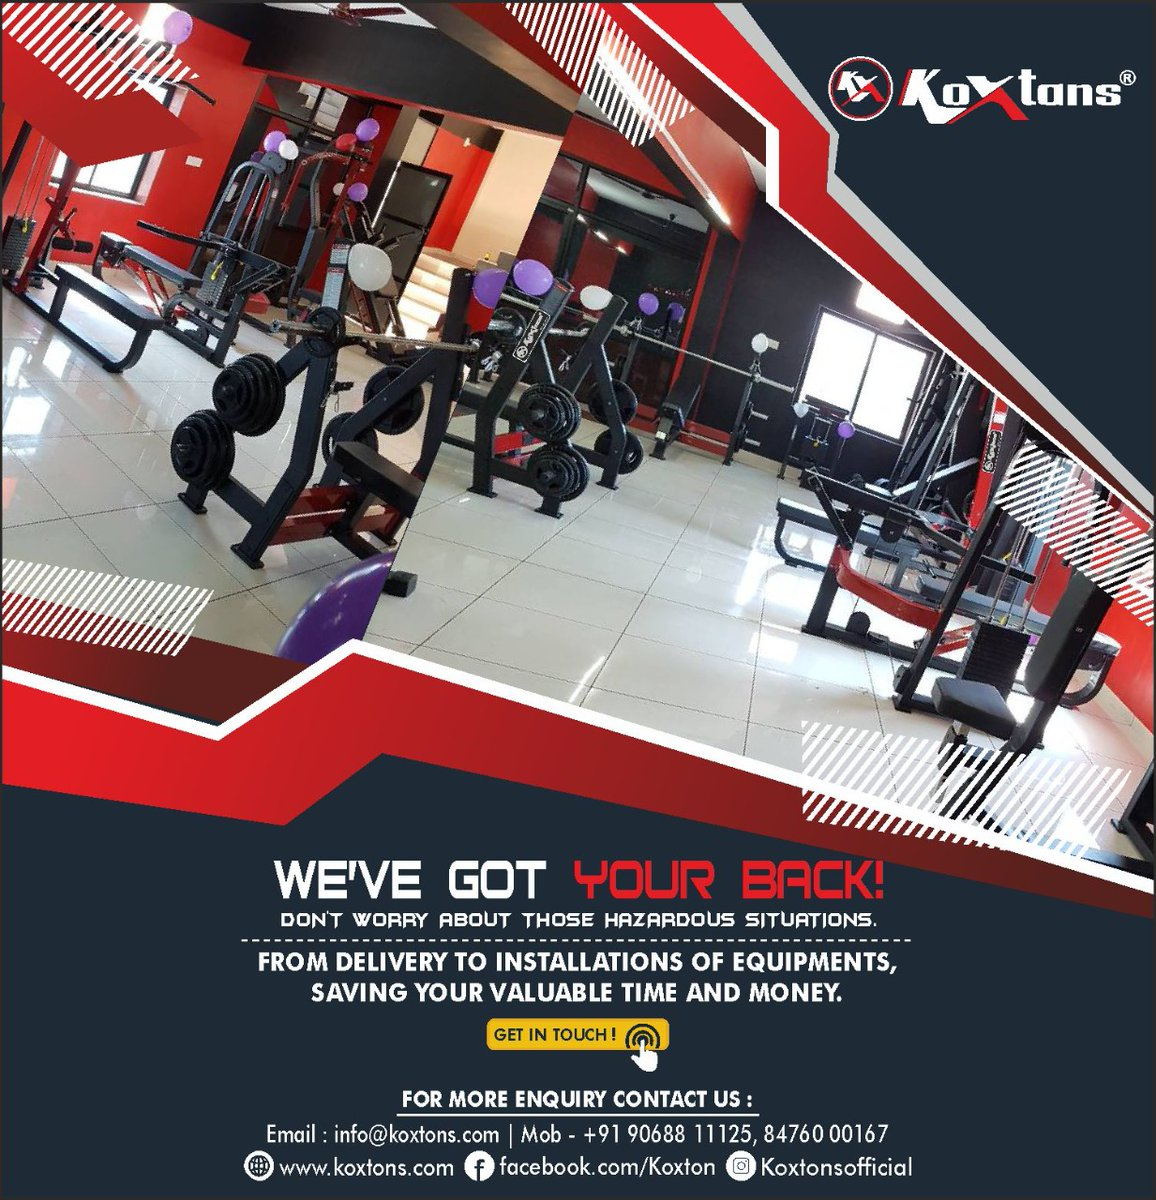 You may be clueless about starting your own Gym or just looking for some assurance. NOT TO WORRY! we are here to help you, from Delivery to Installation, saving your time and money. Koxtons Sports is absolutely your best choice!💪 Visit https://t.co/lMNXHnQaNt or DM on 9068811125 https://t.co/QycMaFIy1y